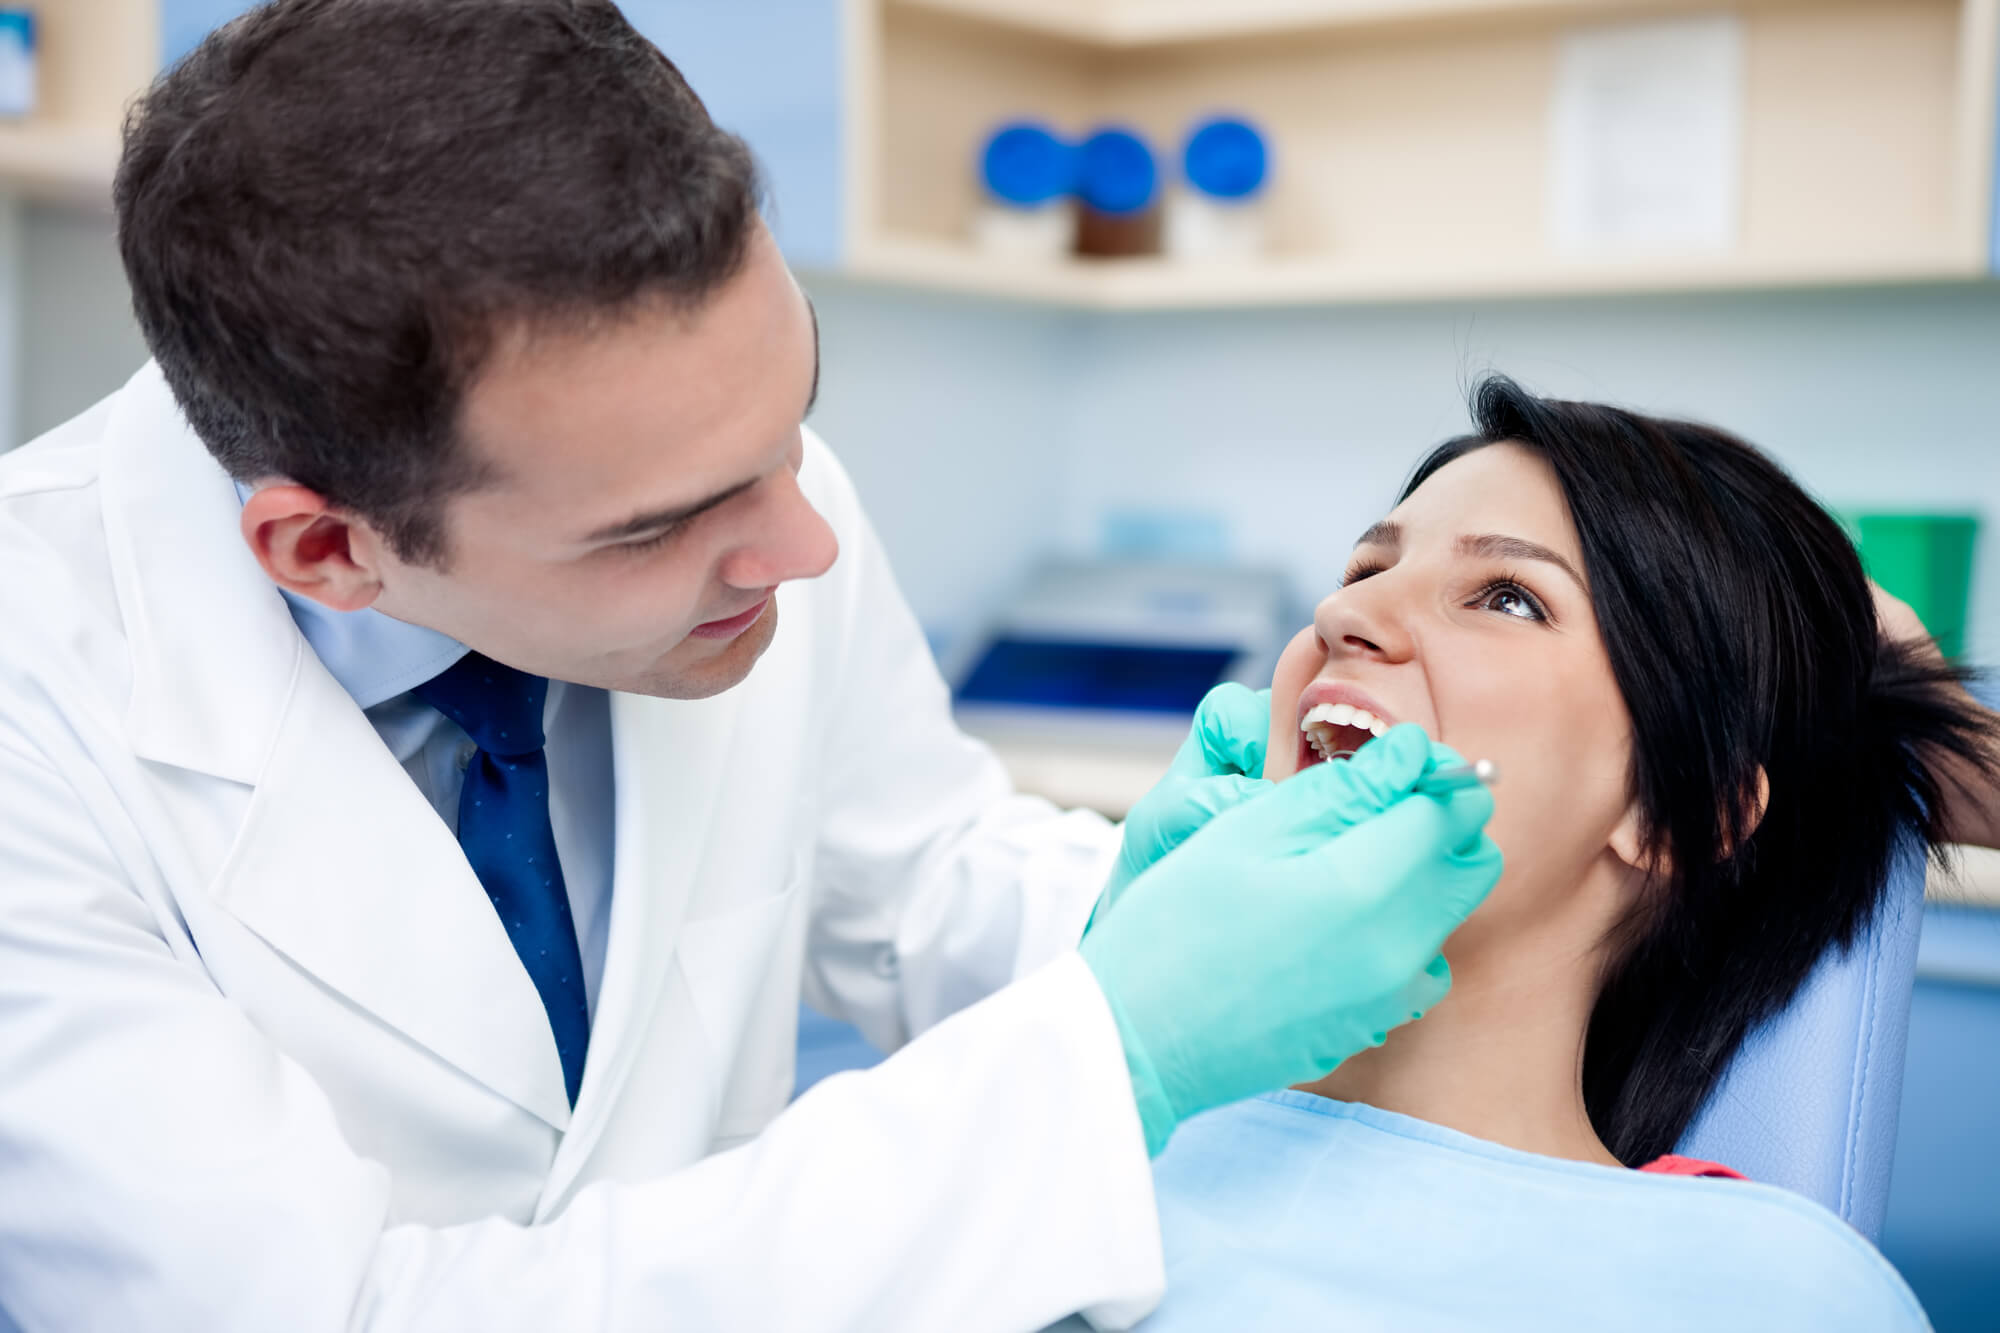 where can i see a dentist near miami airport?